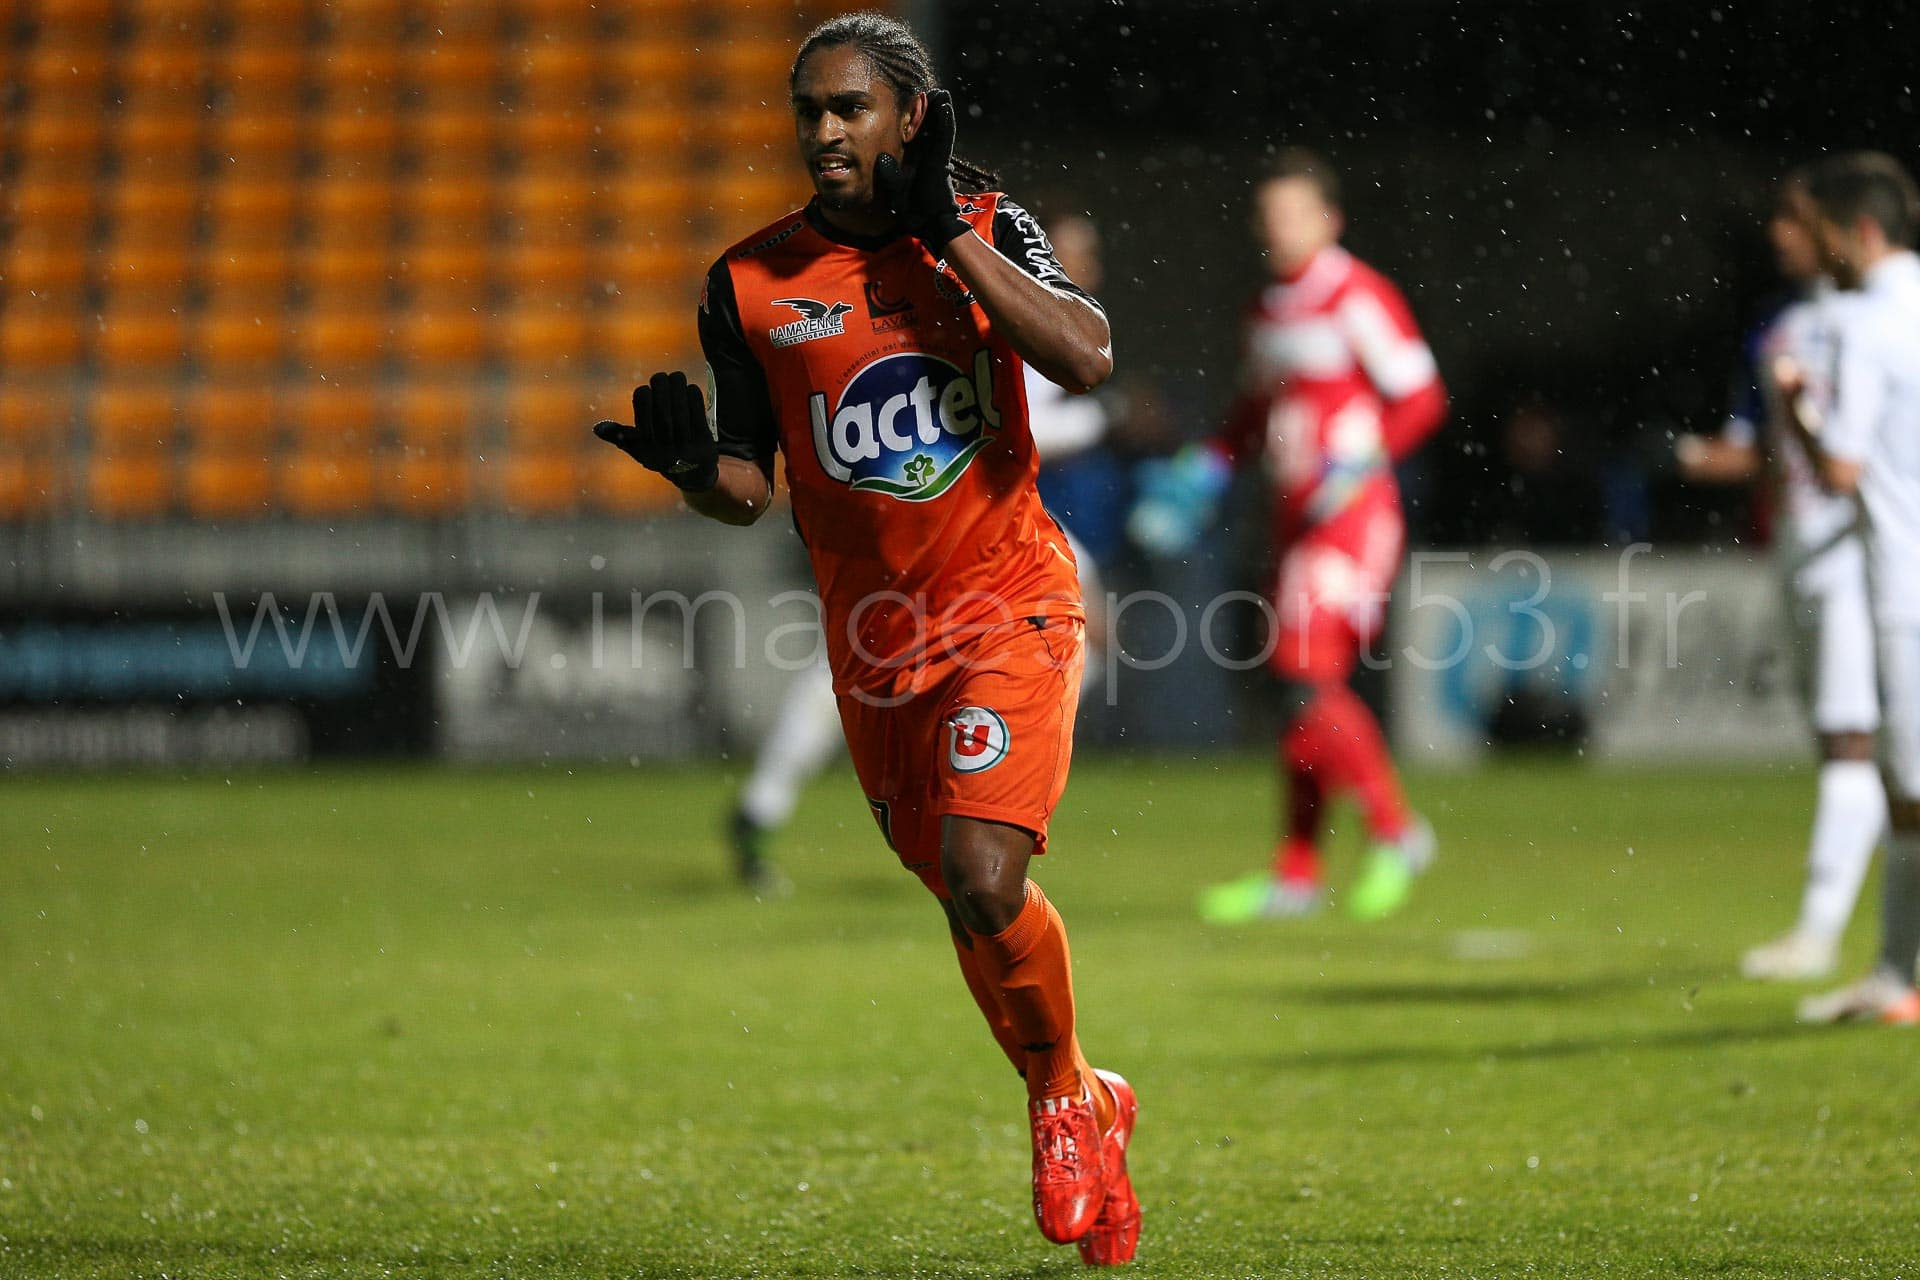 NG-Ligue2-1415-J22-Laval-Troyes_9